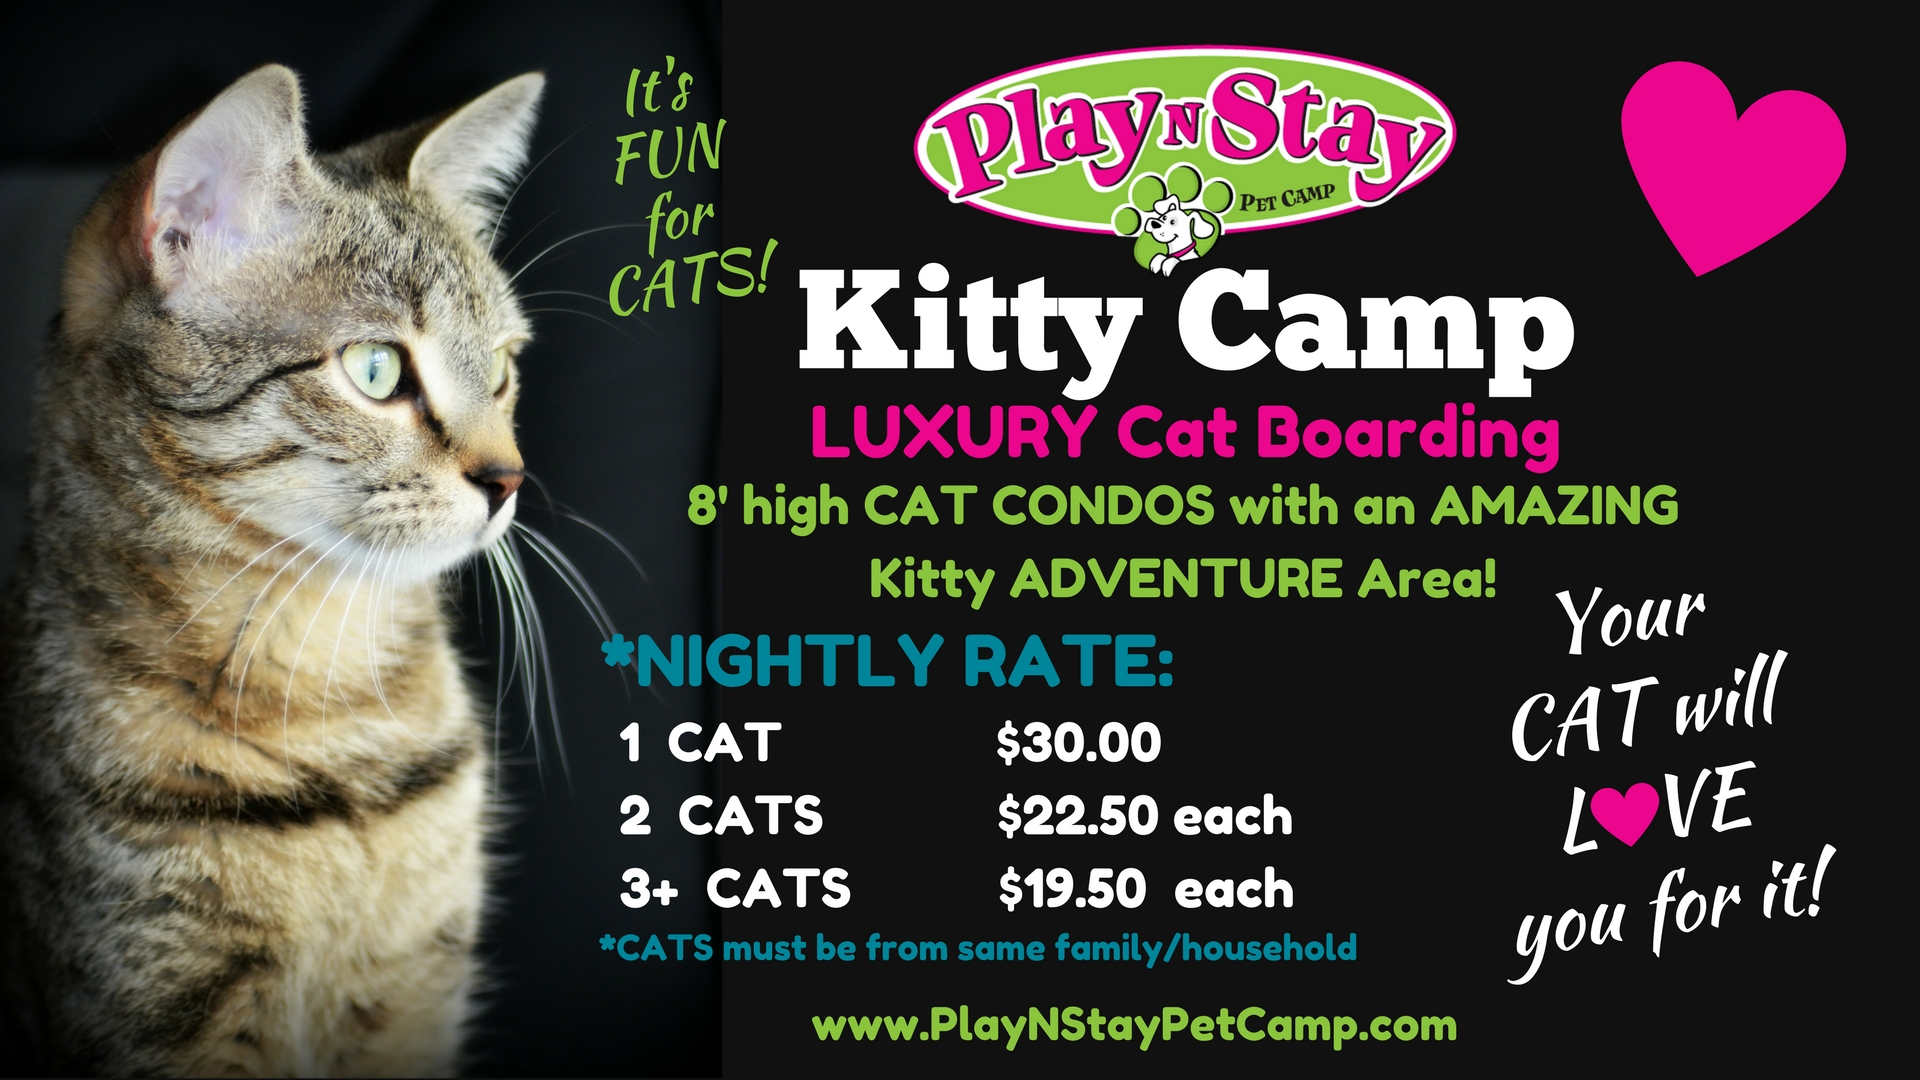 play n stay pet camp fun dog boarding daycare overnight lodging